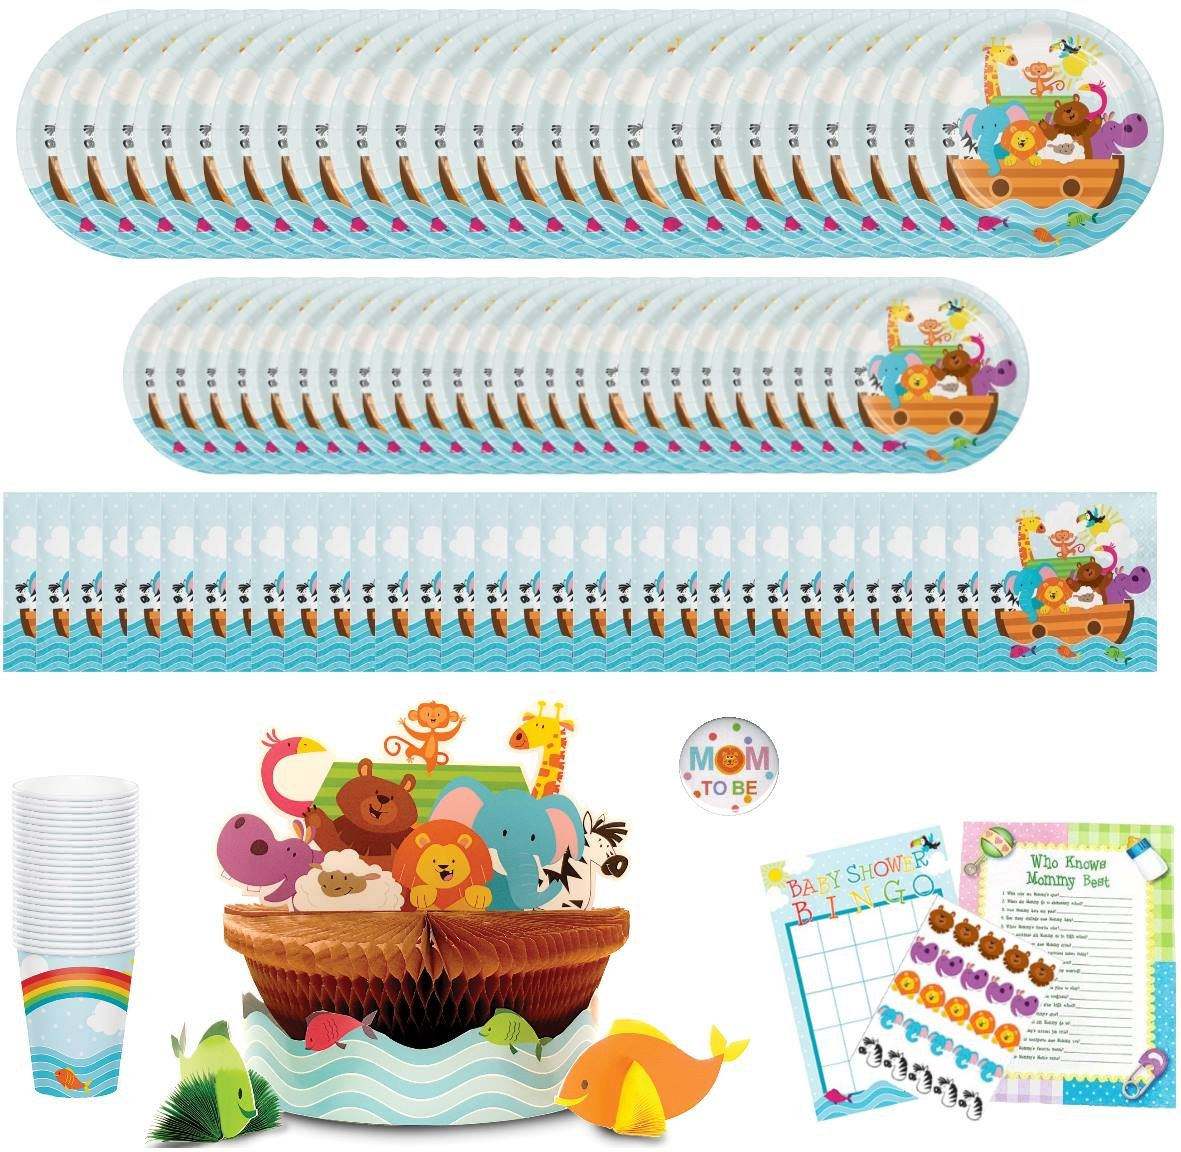 Noahs Ark Baby Shower Party Supplies: Paper Plates, Napkins, Cups, Centerpiece and Games Bundle for 24 Guests by Creative Converting